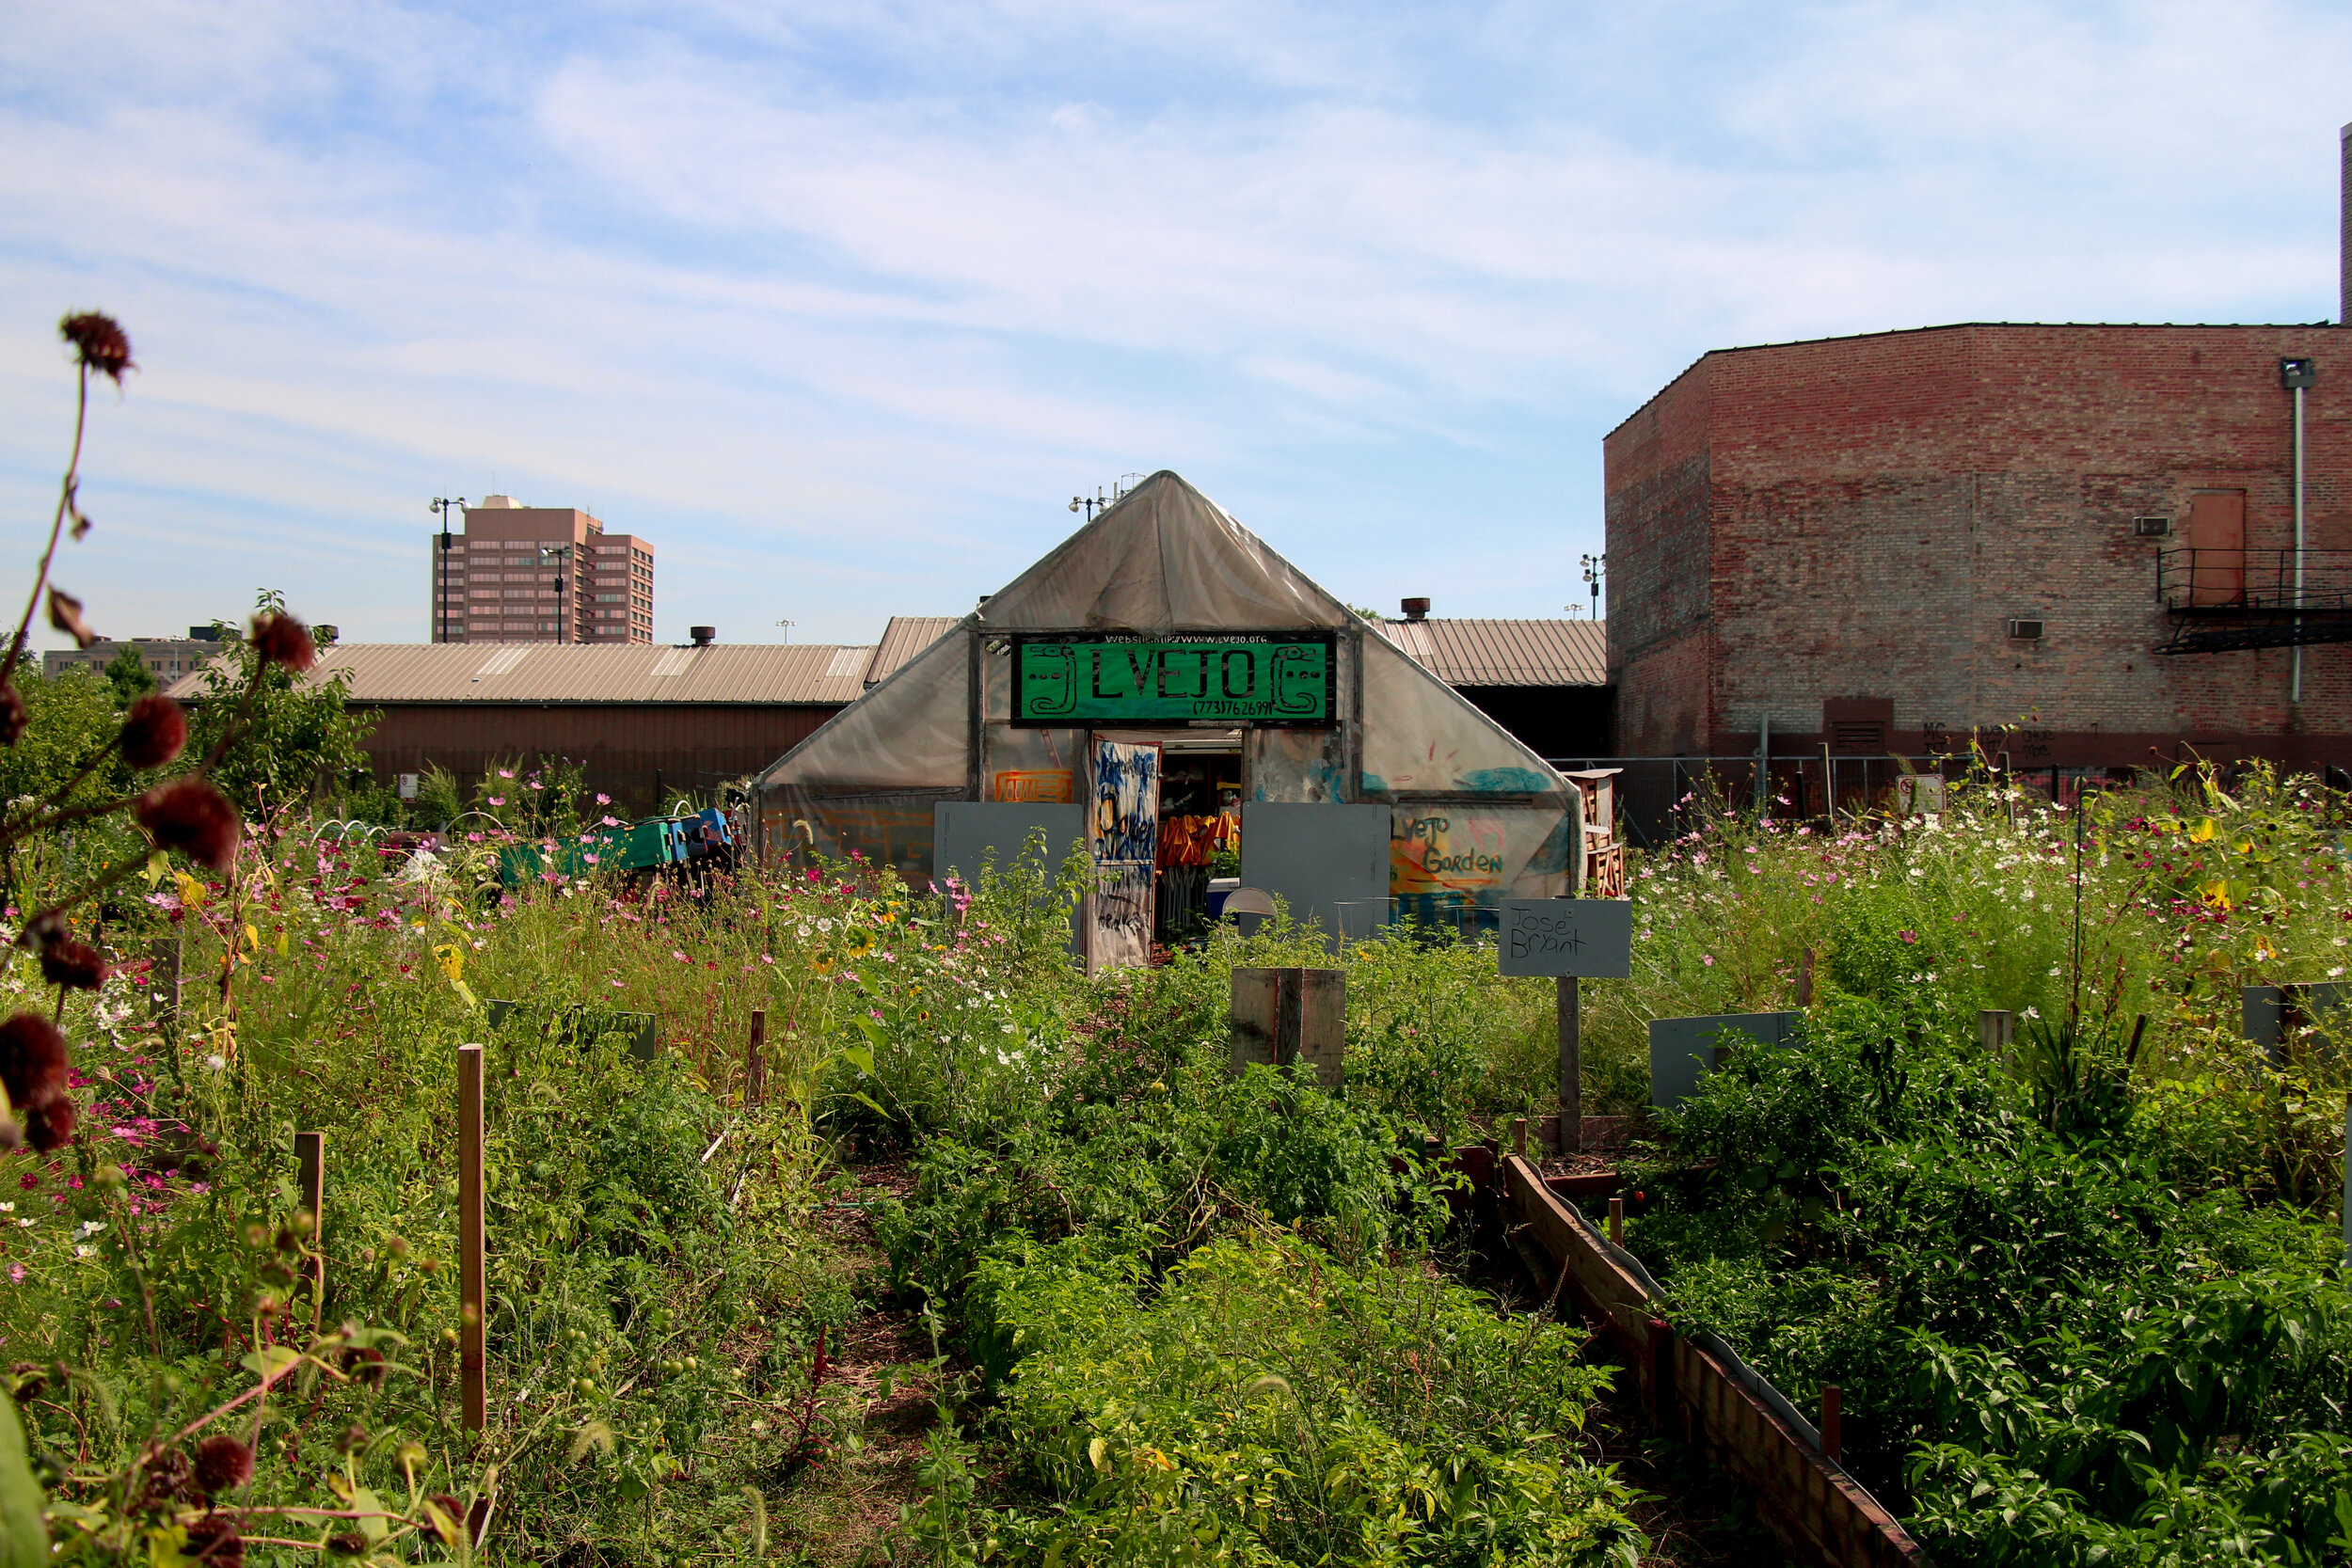 Semillas de Justicia Community garden in Little Village was organized by LVEJO and Troy Street Residents. Today the Garden grows food, raises chickens, and host community events.